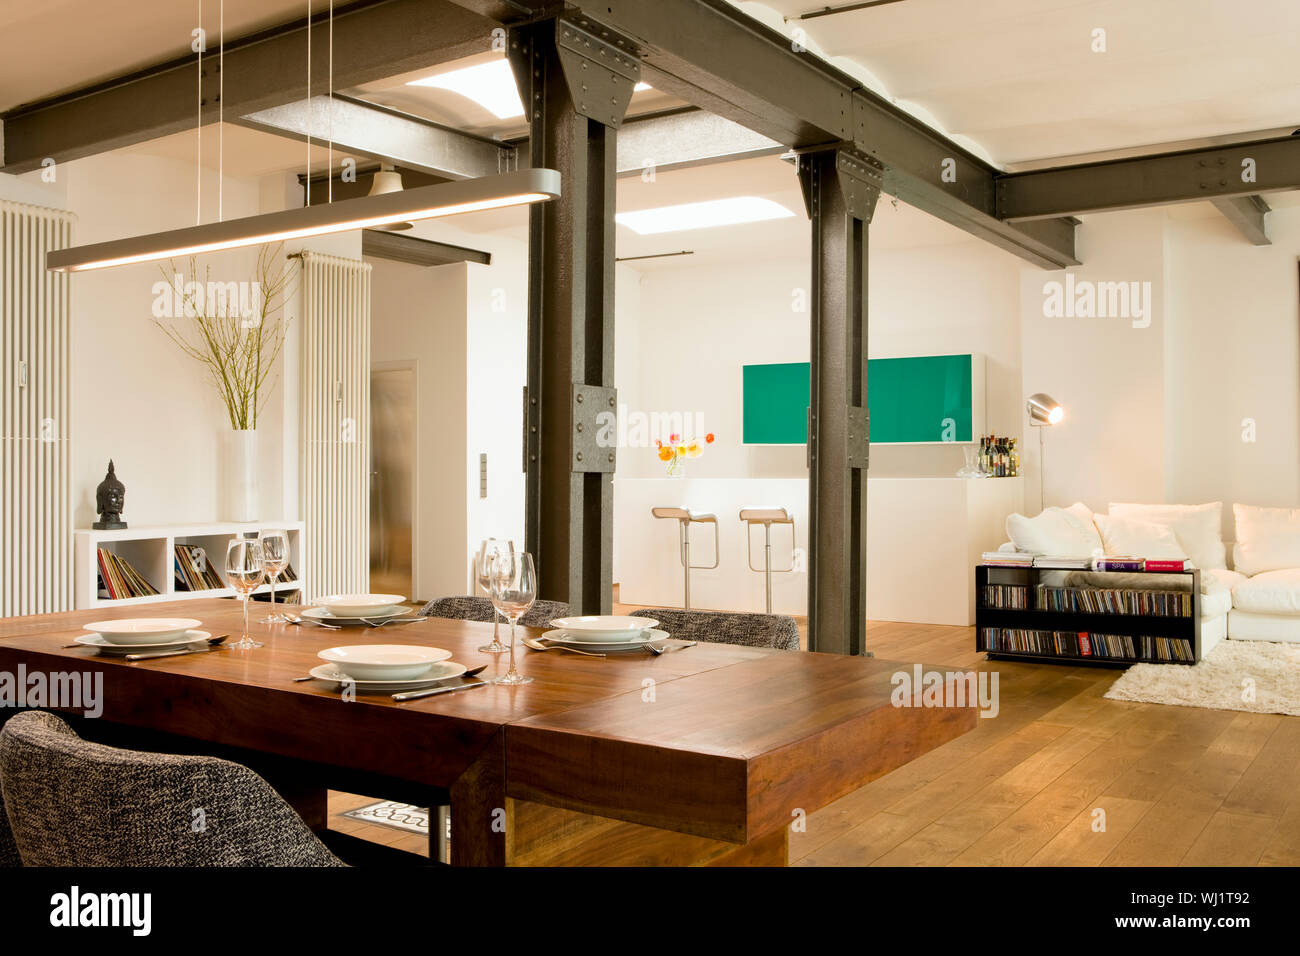 Dining Room With View Of Bar And Living Area In The Background At Modern Home Stock Photo Alamy